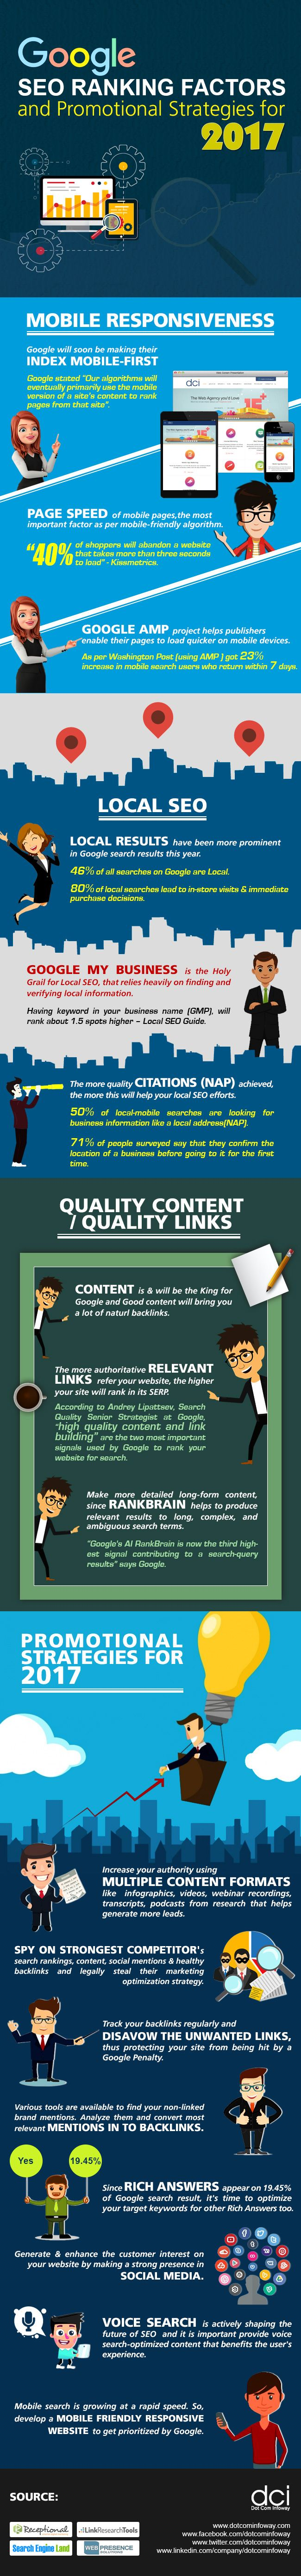 http://www.business2community.com/infographics/google-seo-ranking-factors-promotional-strategies-2017-infographic-01807904